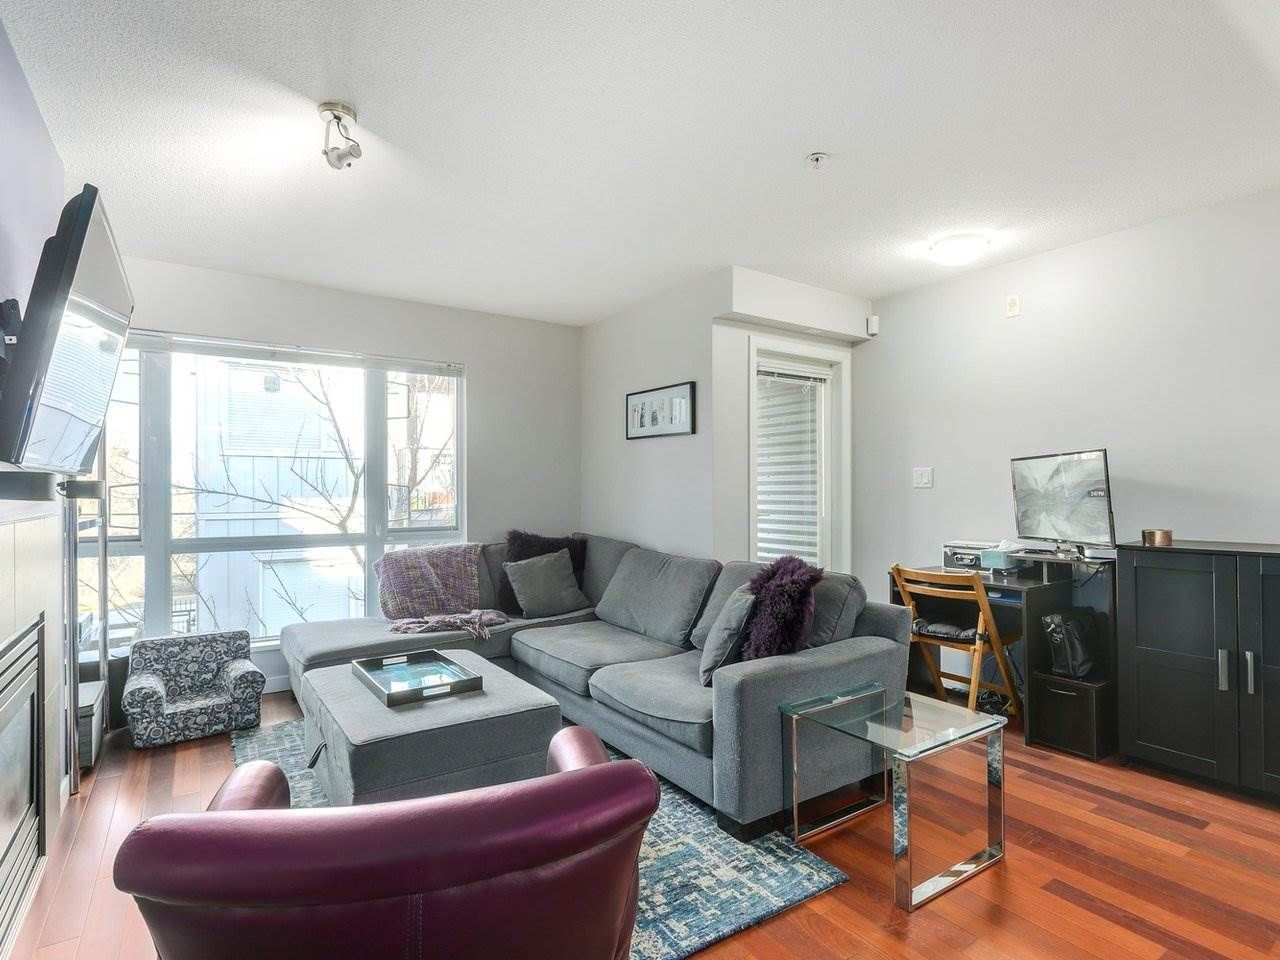 Photo 3: Photos: 119 672 W 6TH AVENUE in Vancouver: Fairview VW Townhouse for sale (Vancouver West)  : MLS®# R2401186